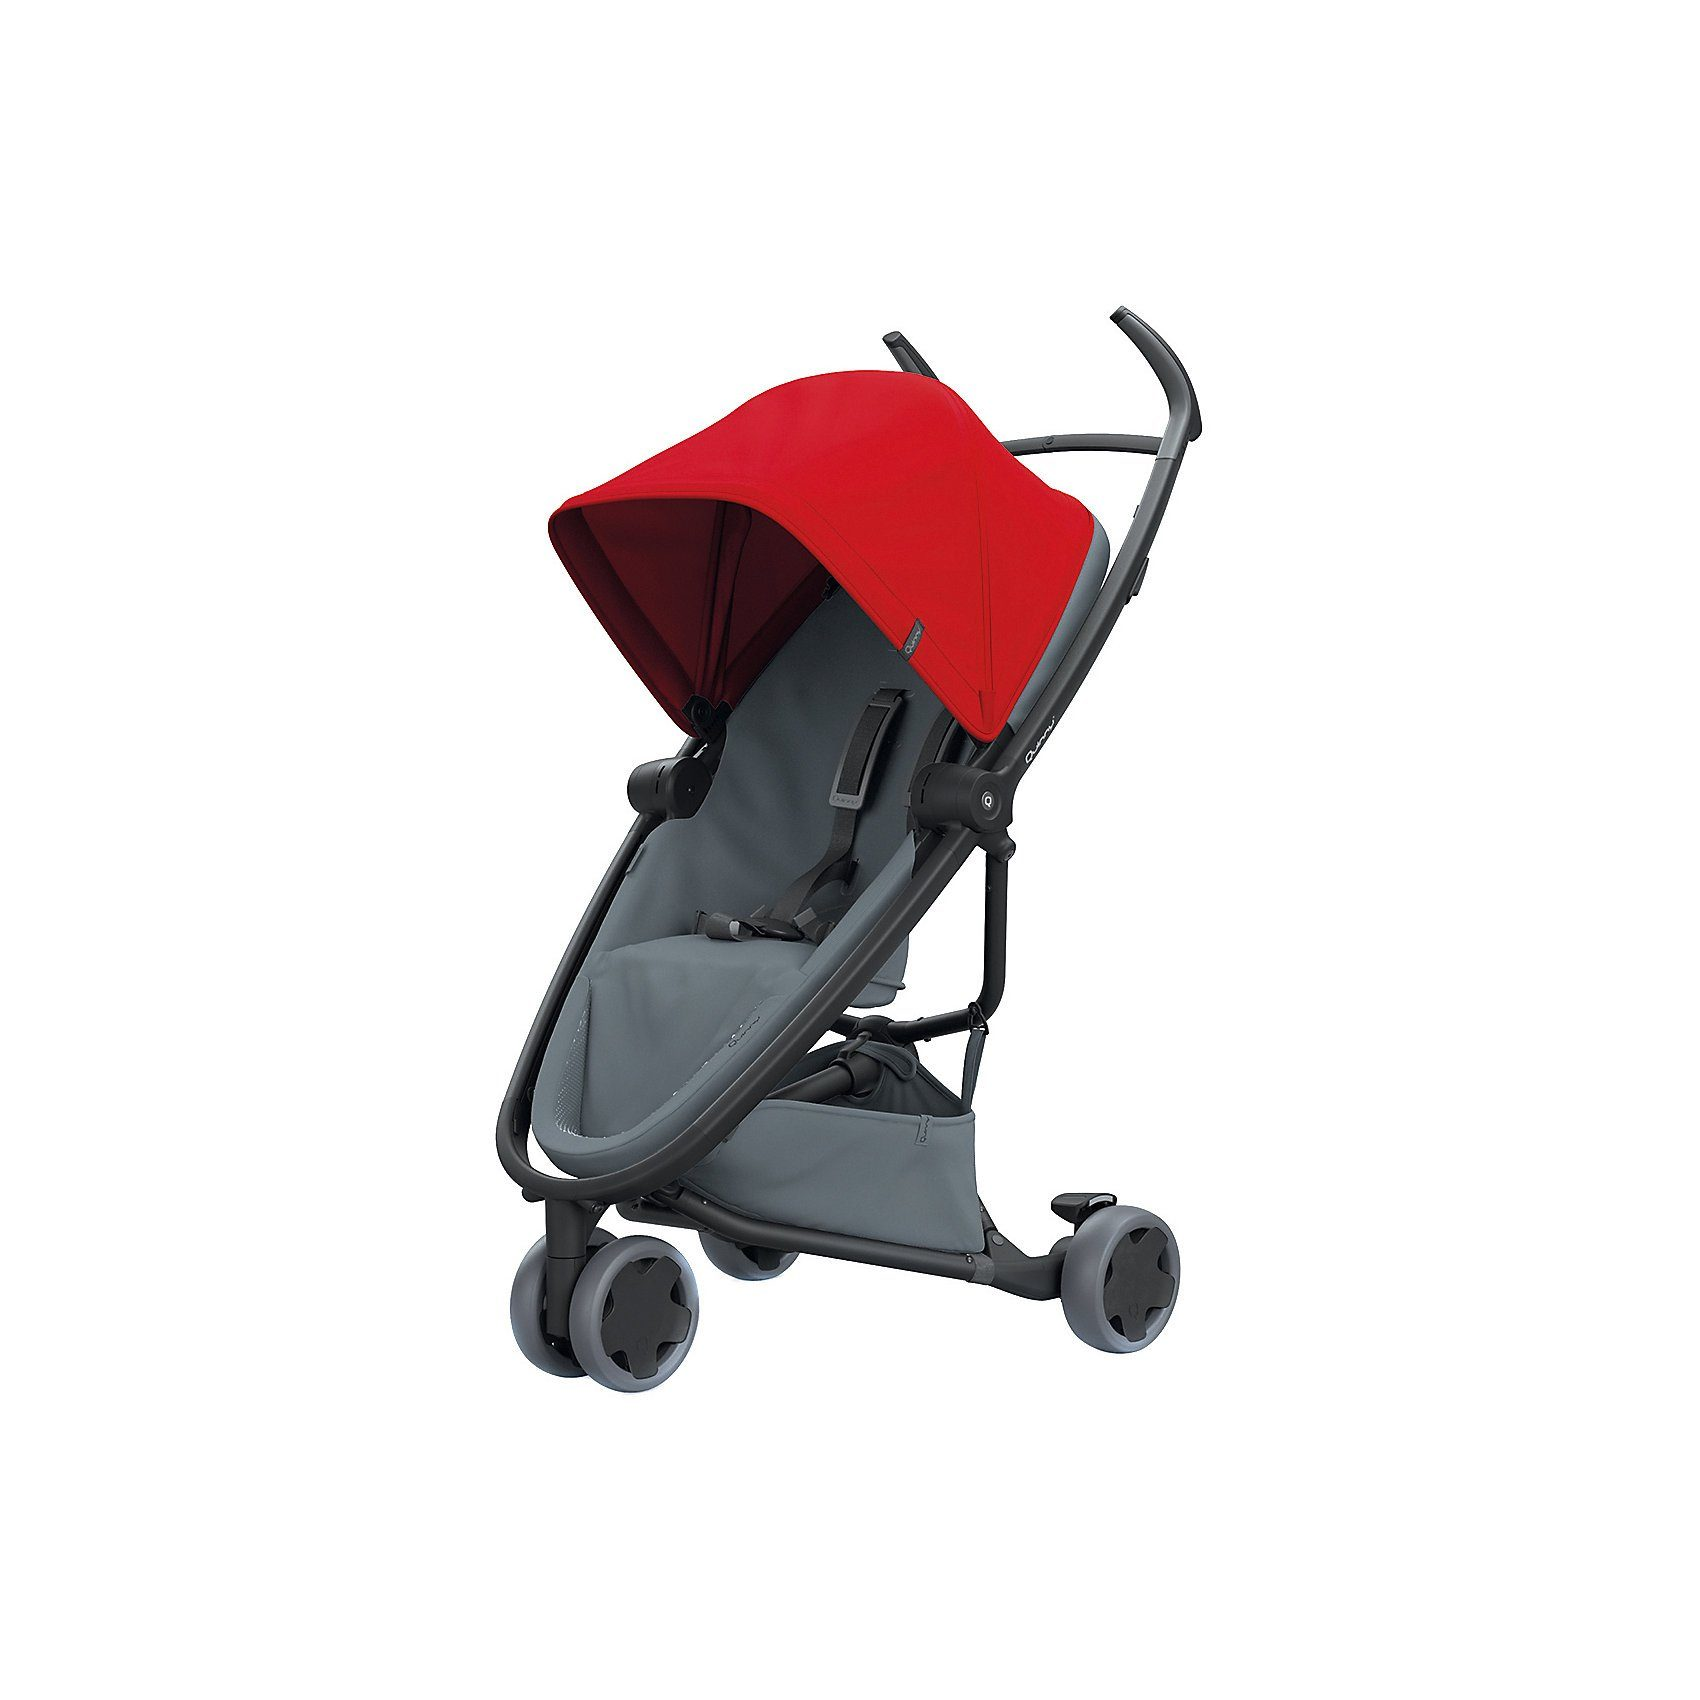 Quinny Buggy Zapp Flex, Red on Graphite, 2018